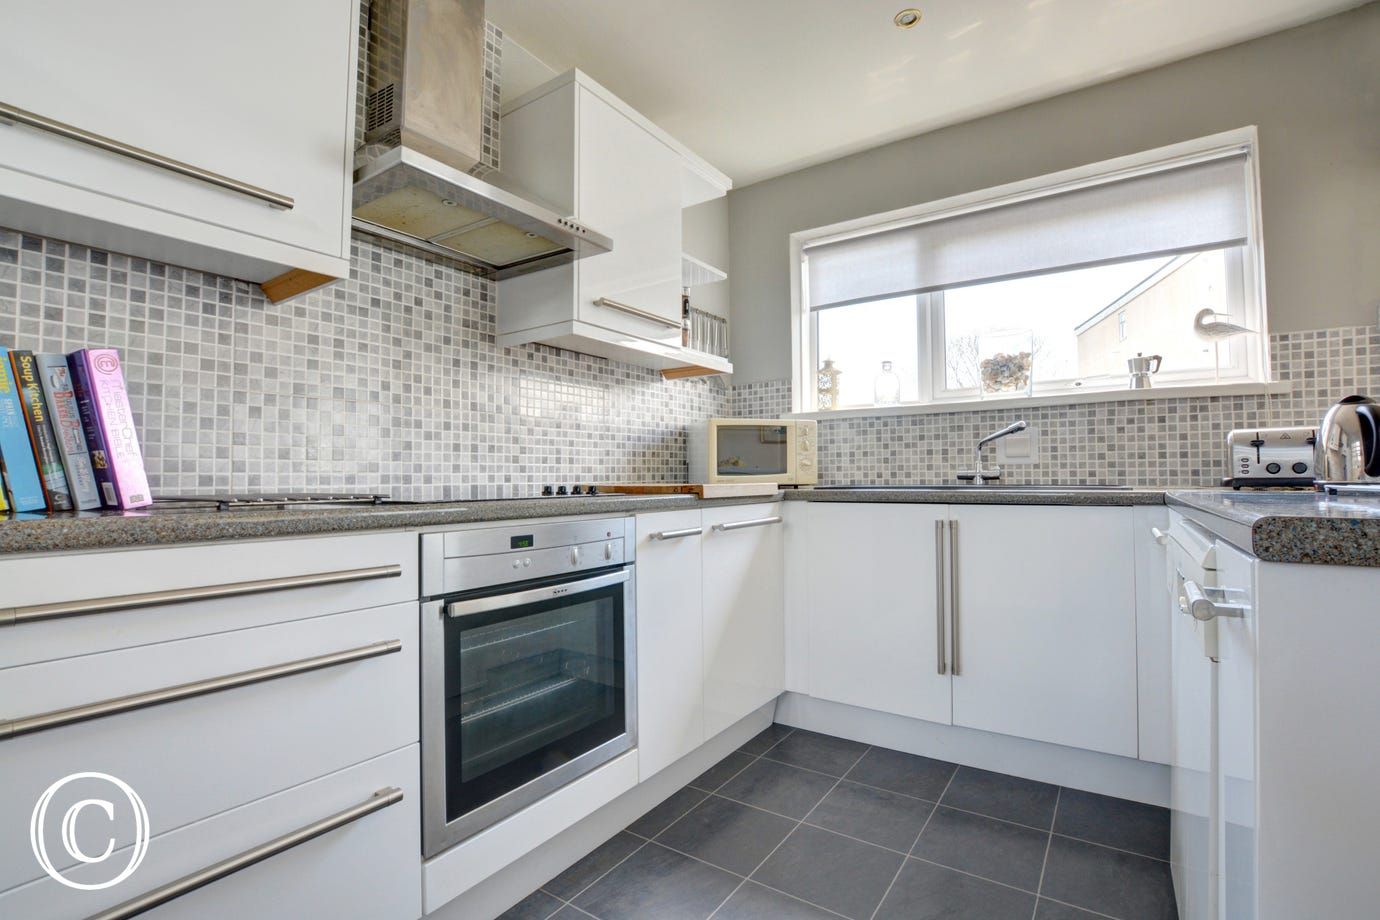 This self catering property has well equipped kitchen with hatch to the dining area